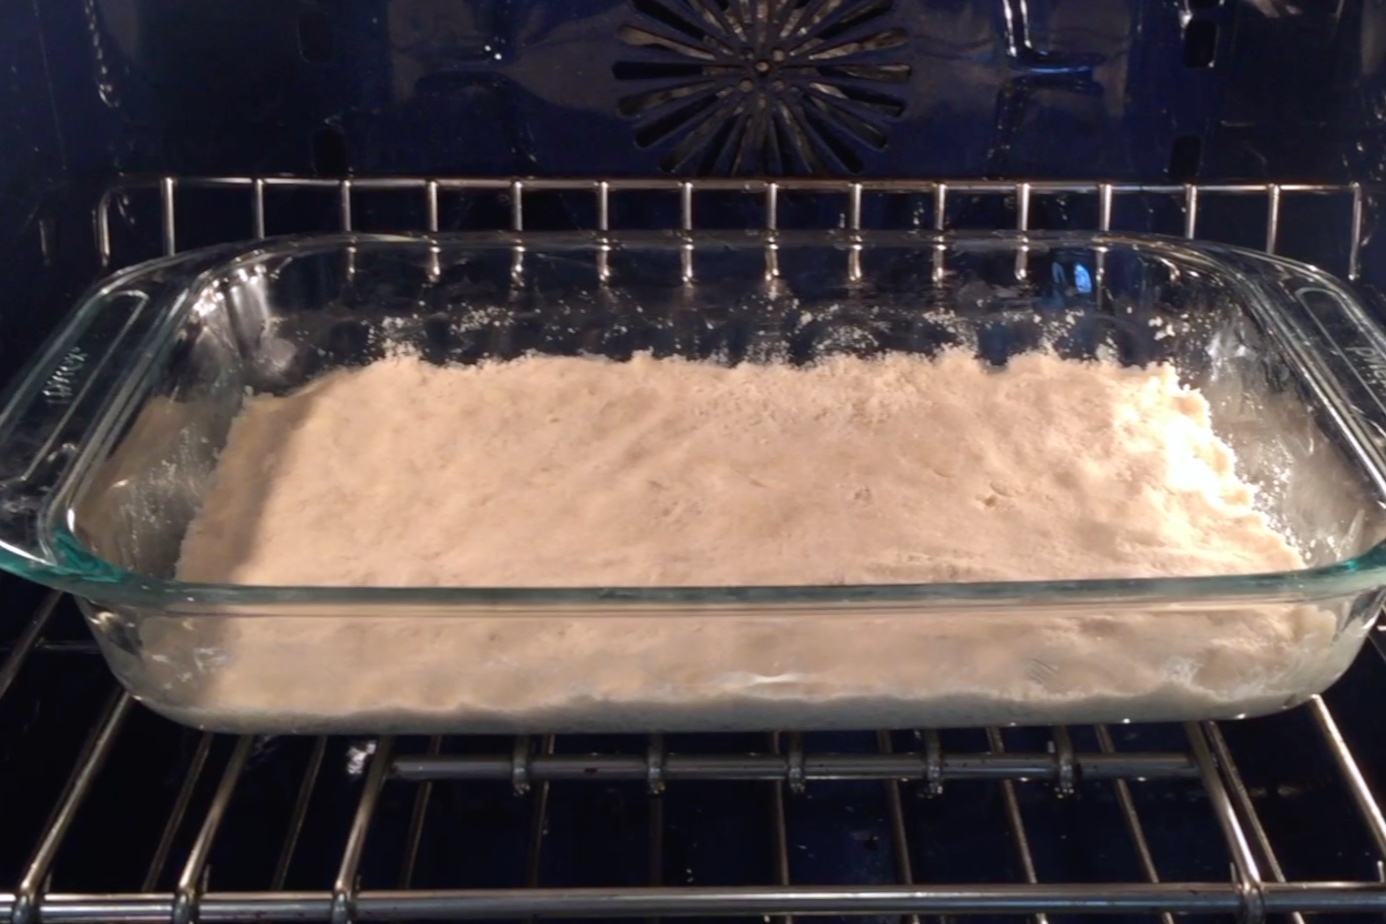 4. Bake for 20 minutes. The crust should be soft and just browned around the edges. -